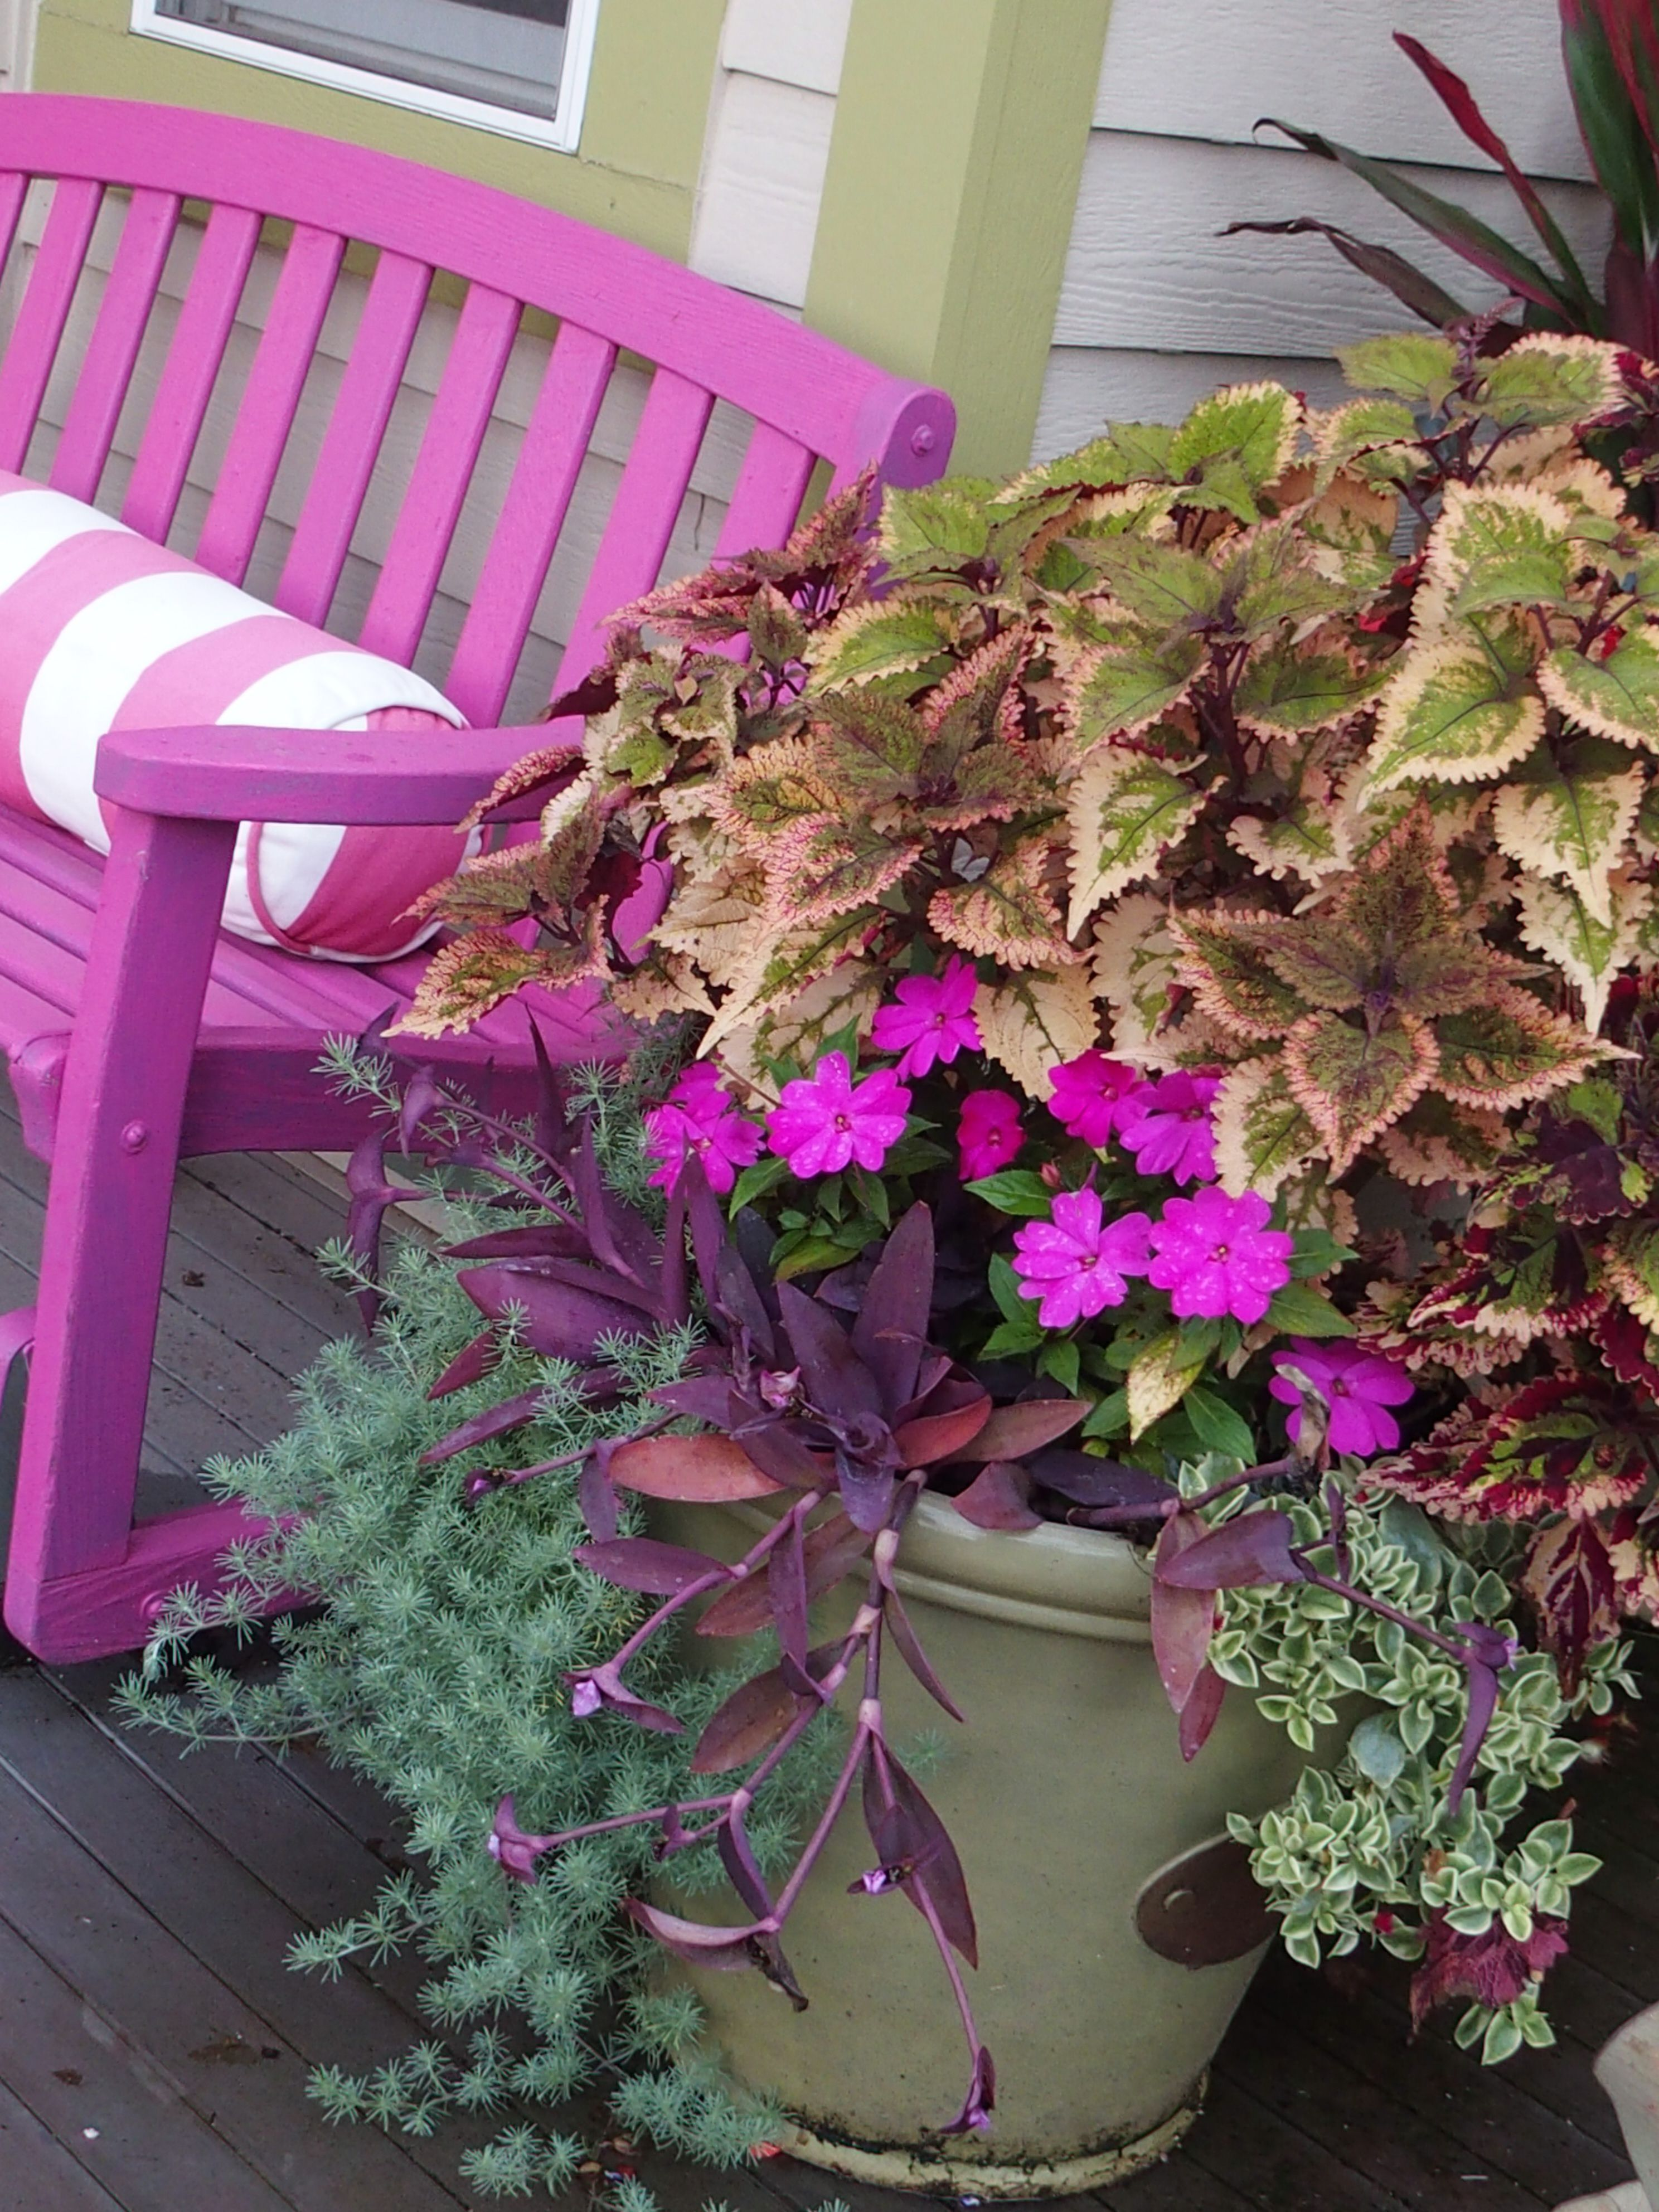 Summer flowers planters annuals curb appeal pink bench garden summer flowers planters annuals curb appeal pink bench garden design izmirmasajfo